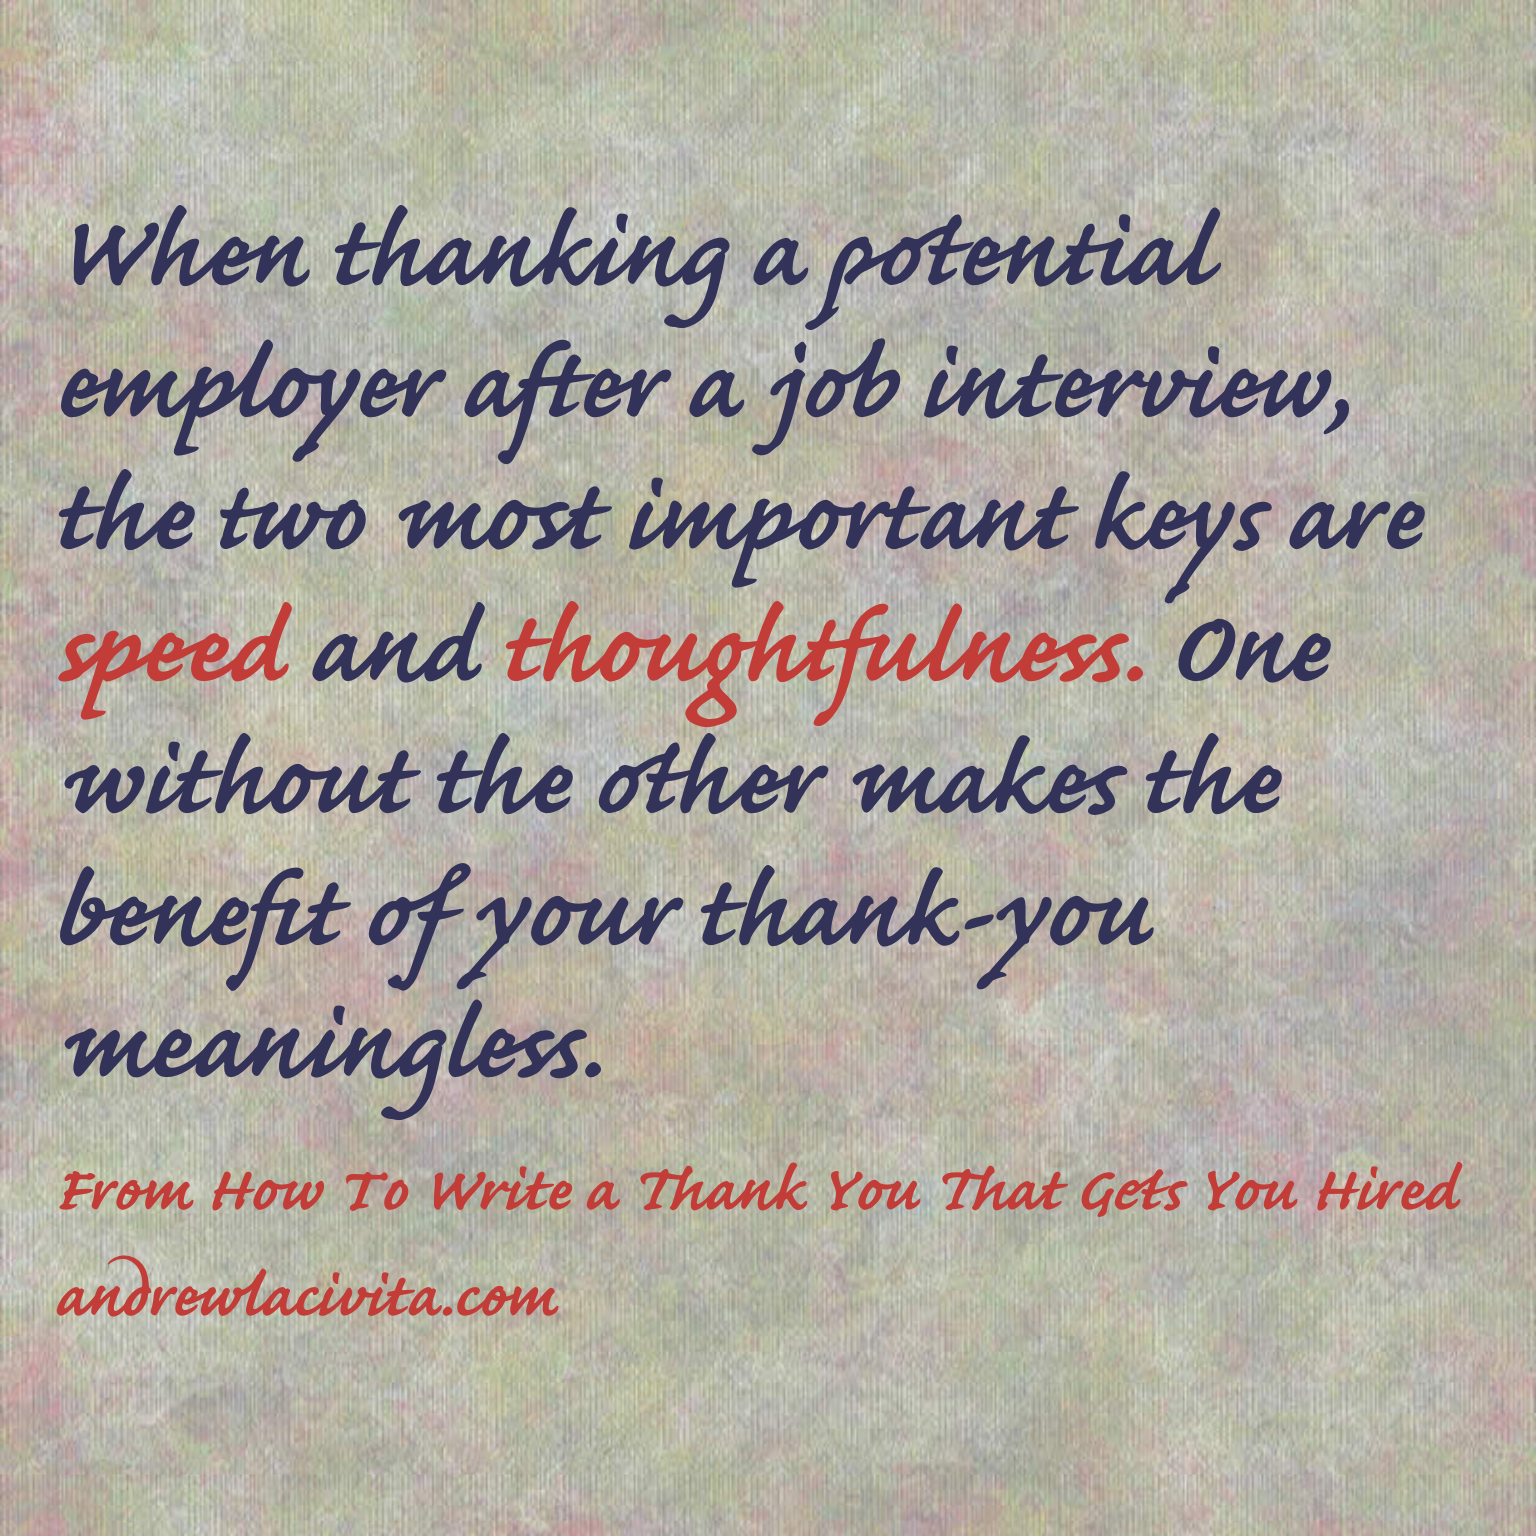 how to write a thank you that gets you hired 7 11 16 1